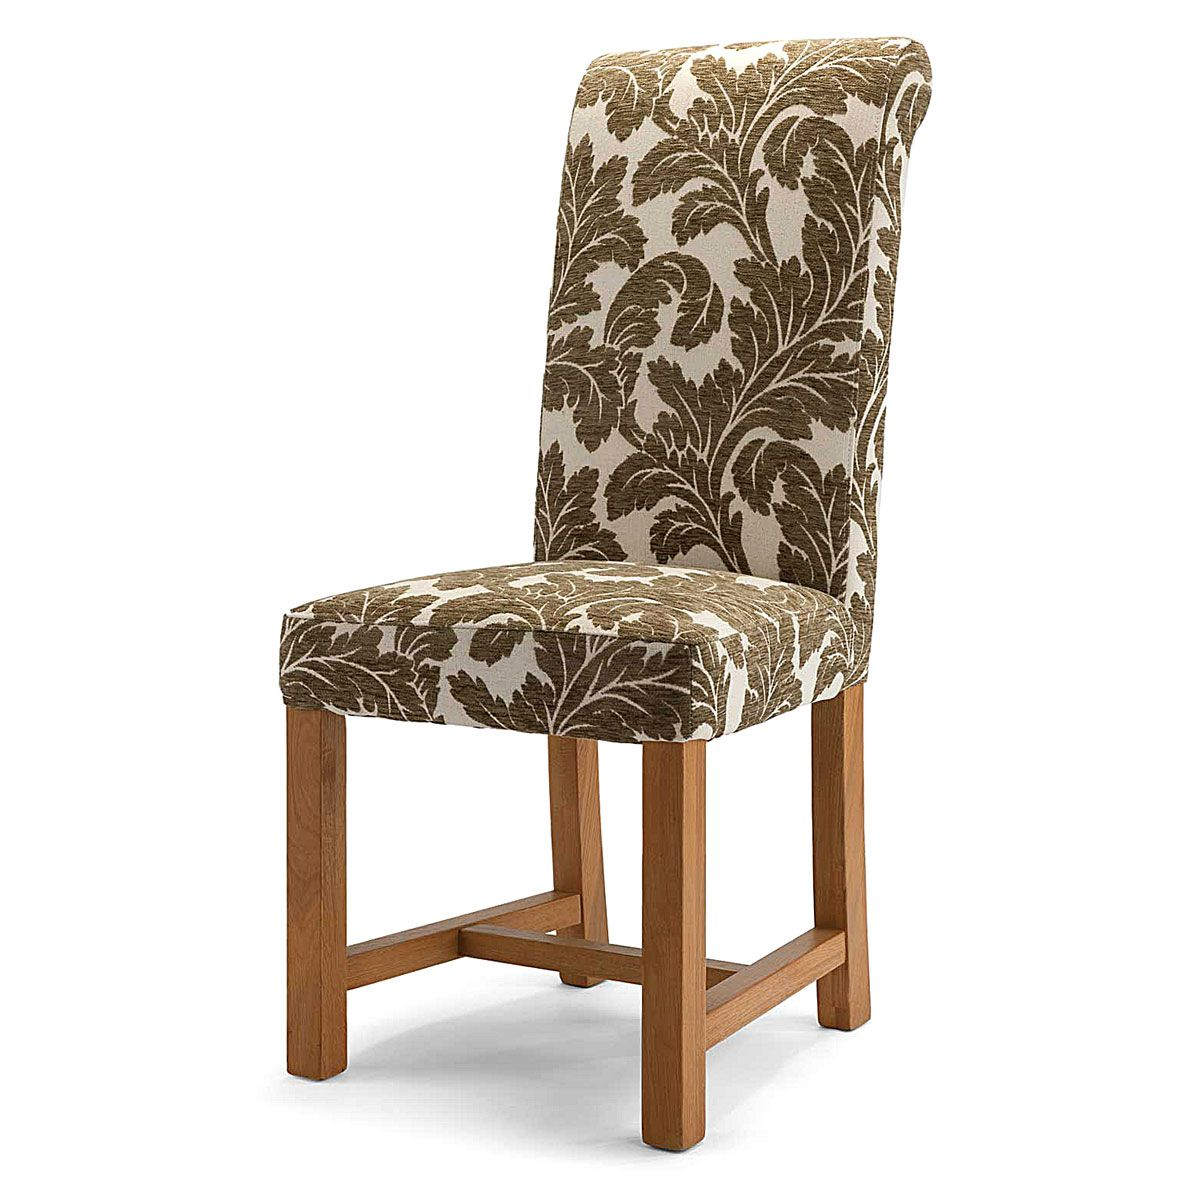 Dining Chairs Chicago: Chicago Floral Sage Chair: Dining Room